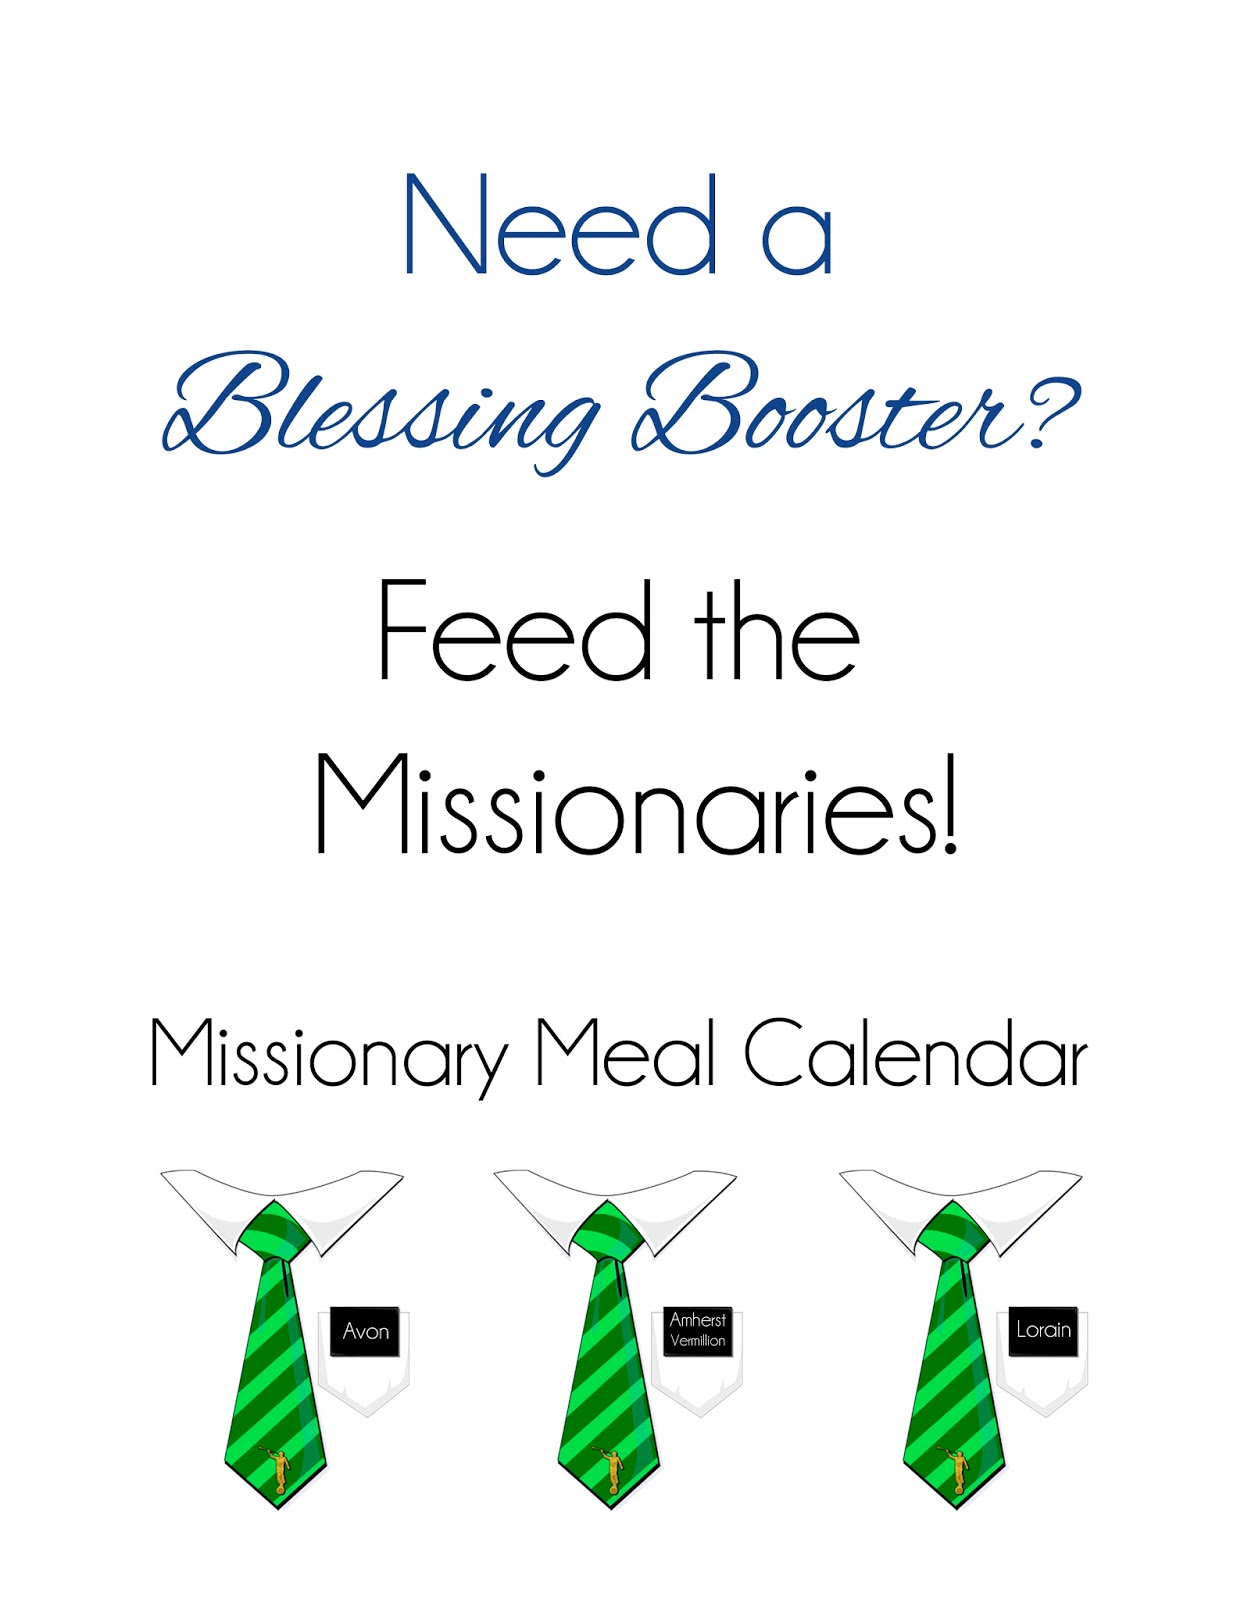 Meal Calendar | Relief Society Midweek Meeting Activities Missionary Meal Calendar